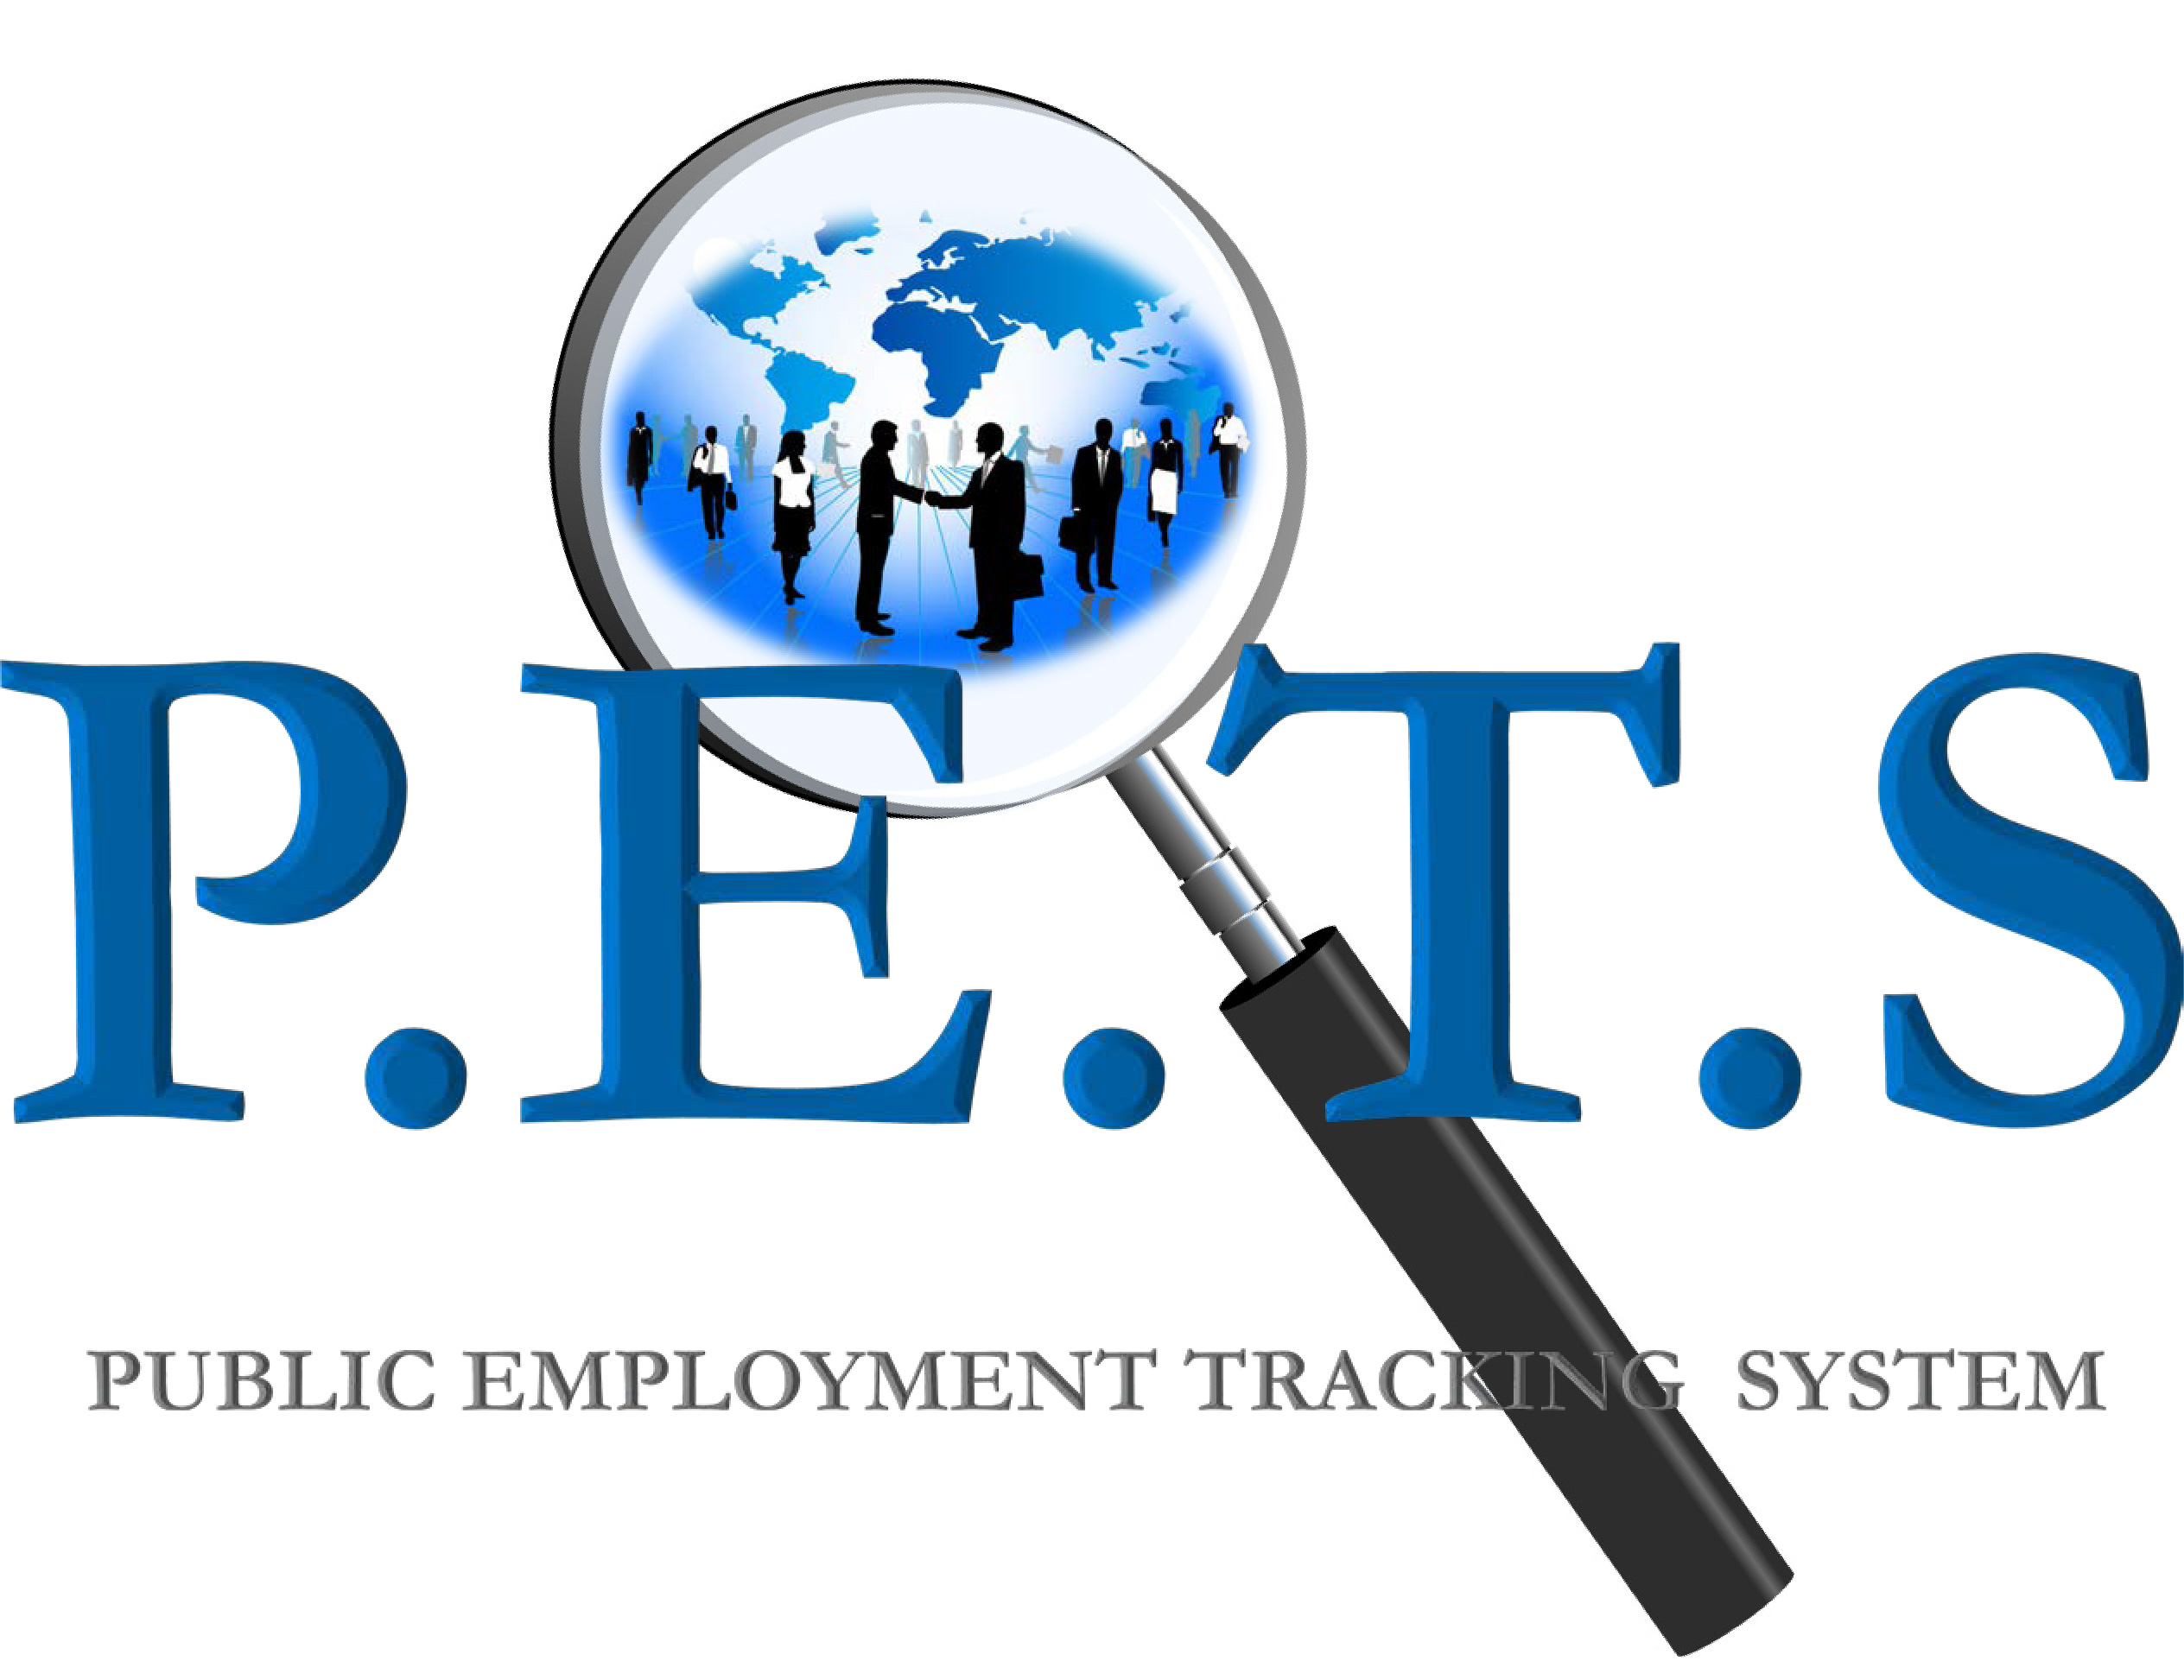 michigan employment training about public employment tracking system p e t s is a web platform where the job seekers and the companies can each other